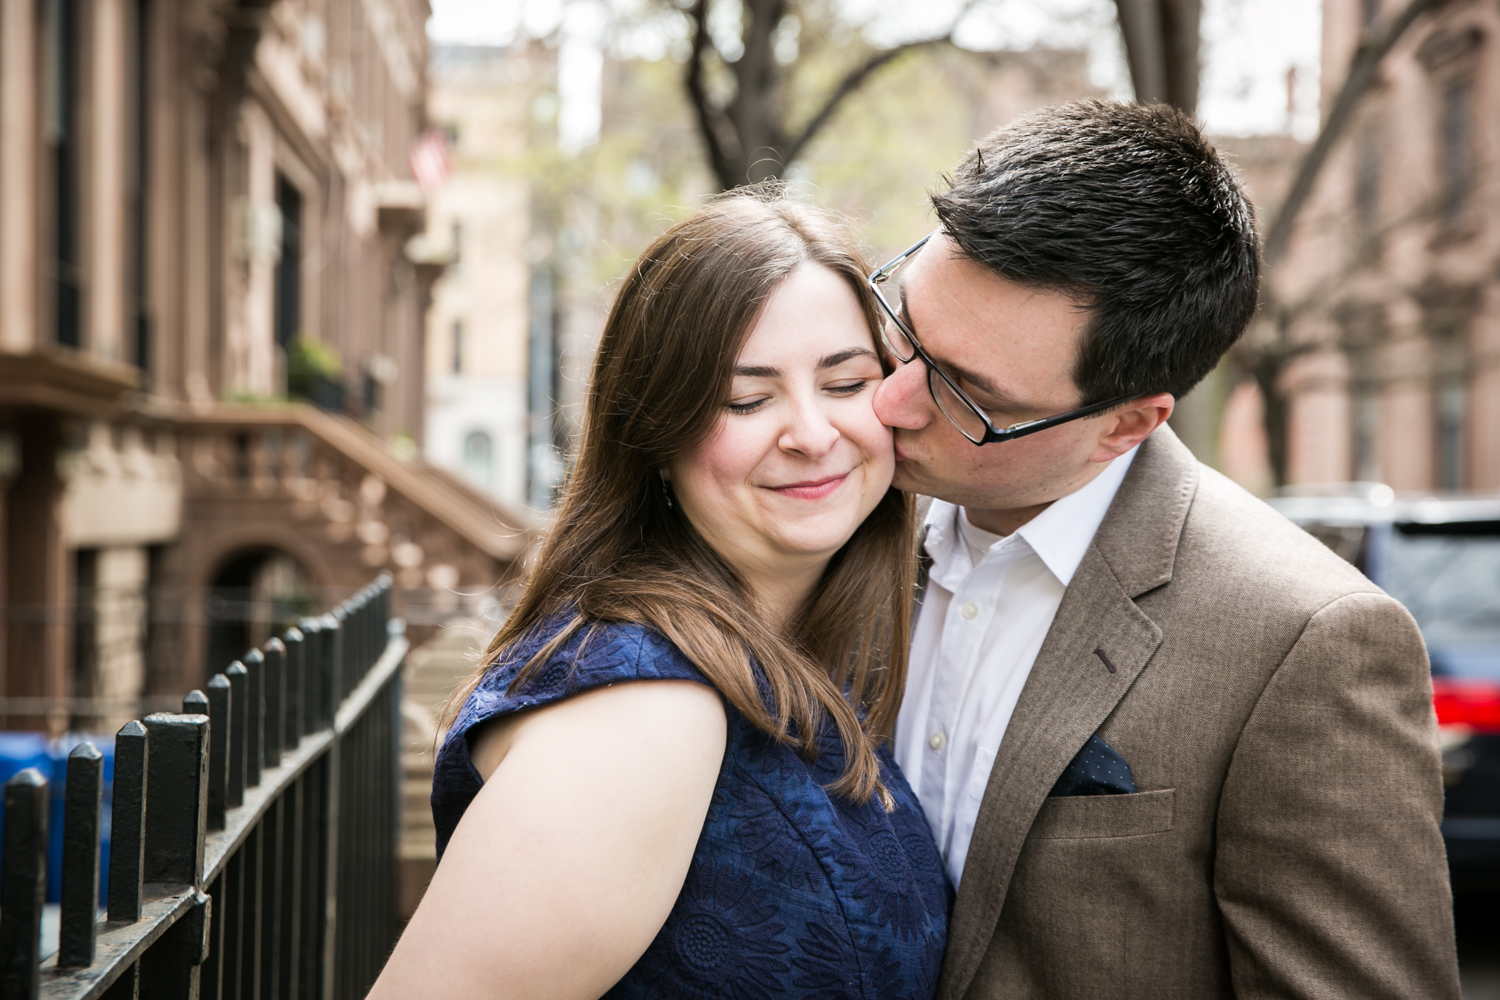 Brooklyn Promenade engagement photos of man kissing woman on the cheek